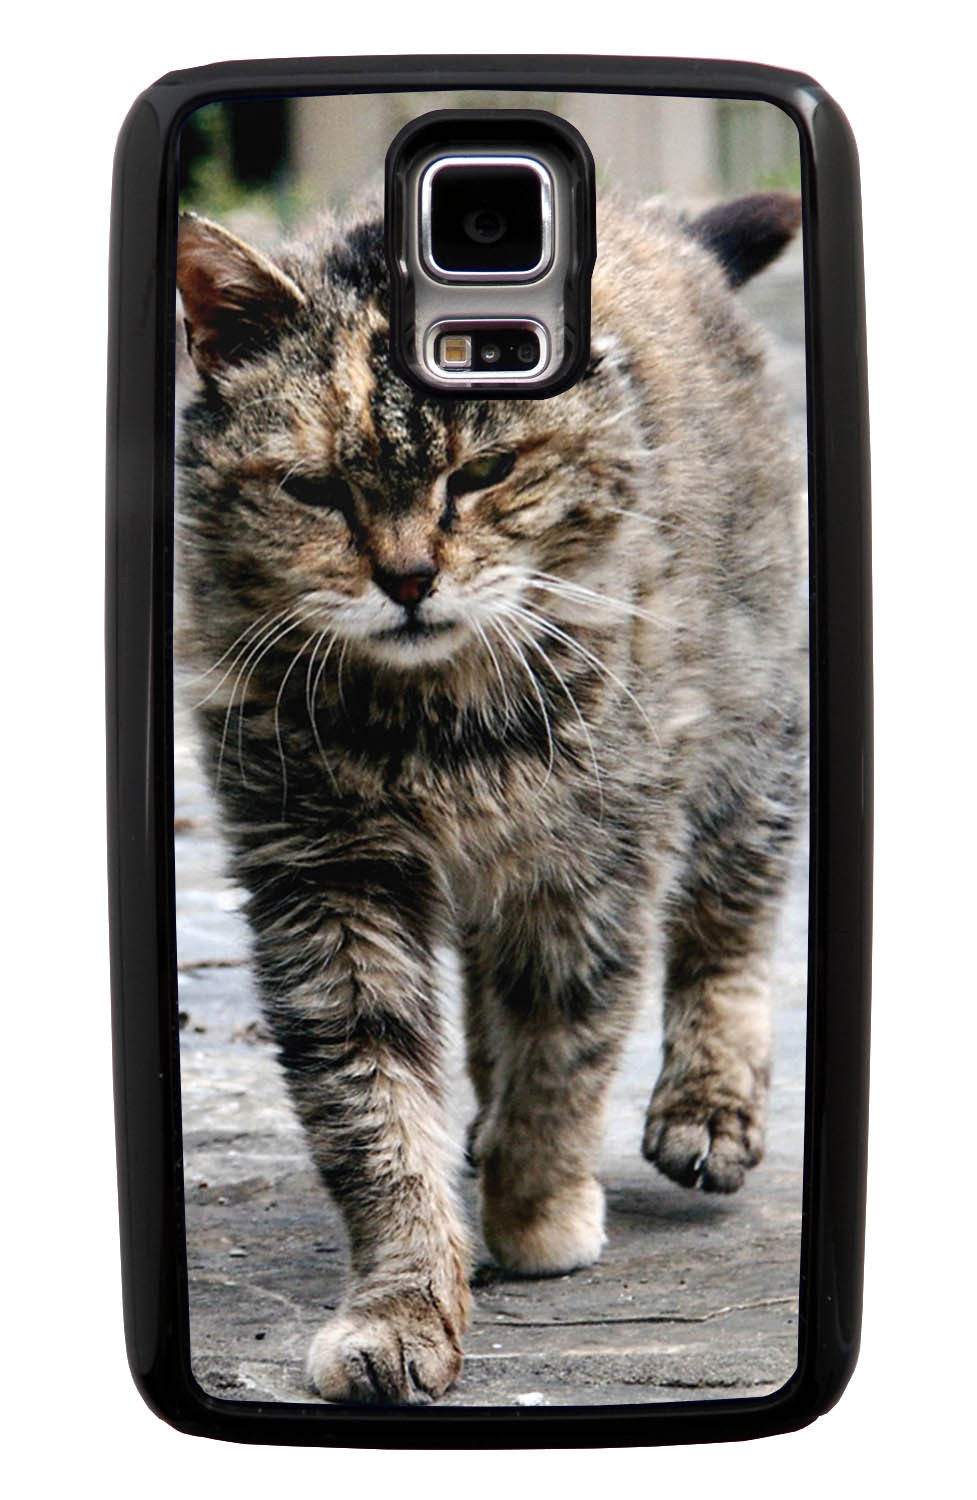 Samsung Galaxy S5 / SV Cat Case - Strutting Cat Photo